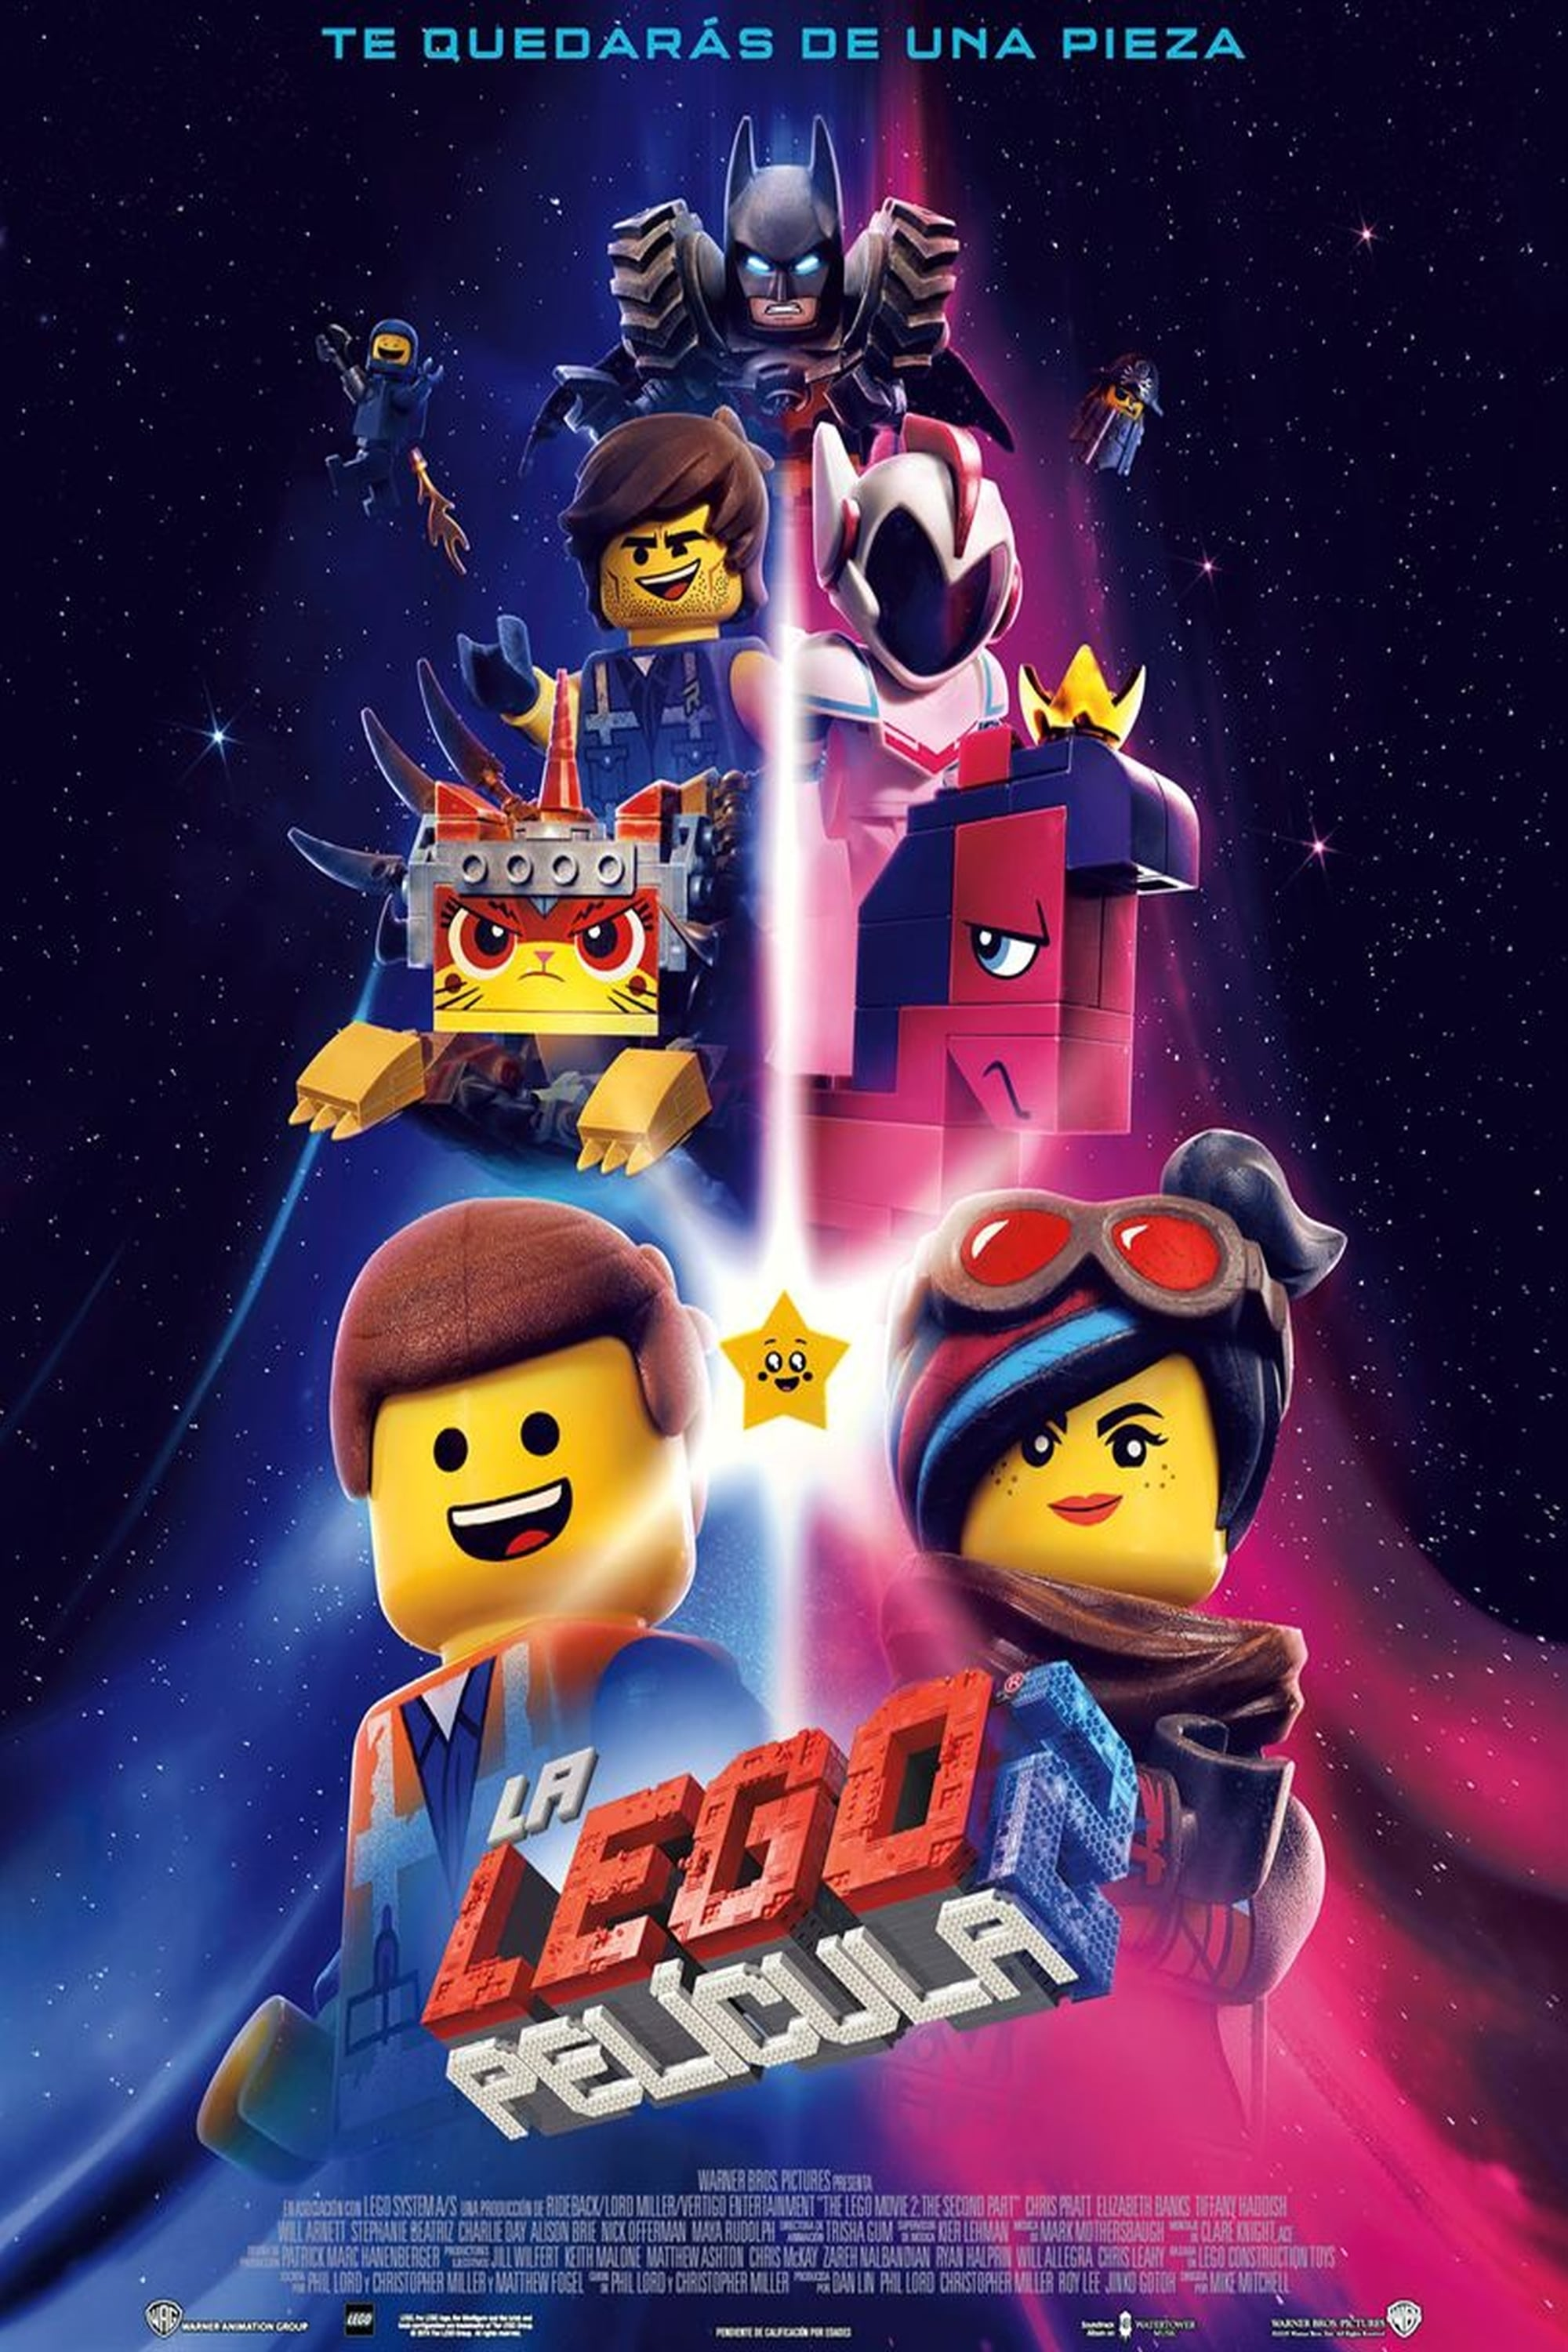 Imagen 1 The Lego Movie 2: The Second Part